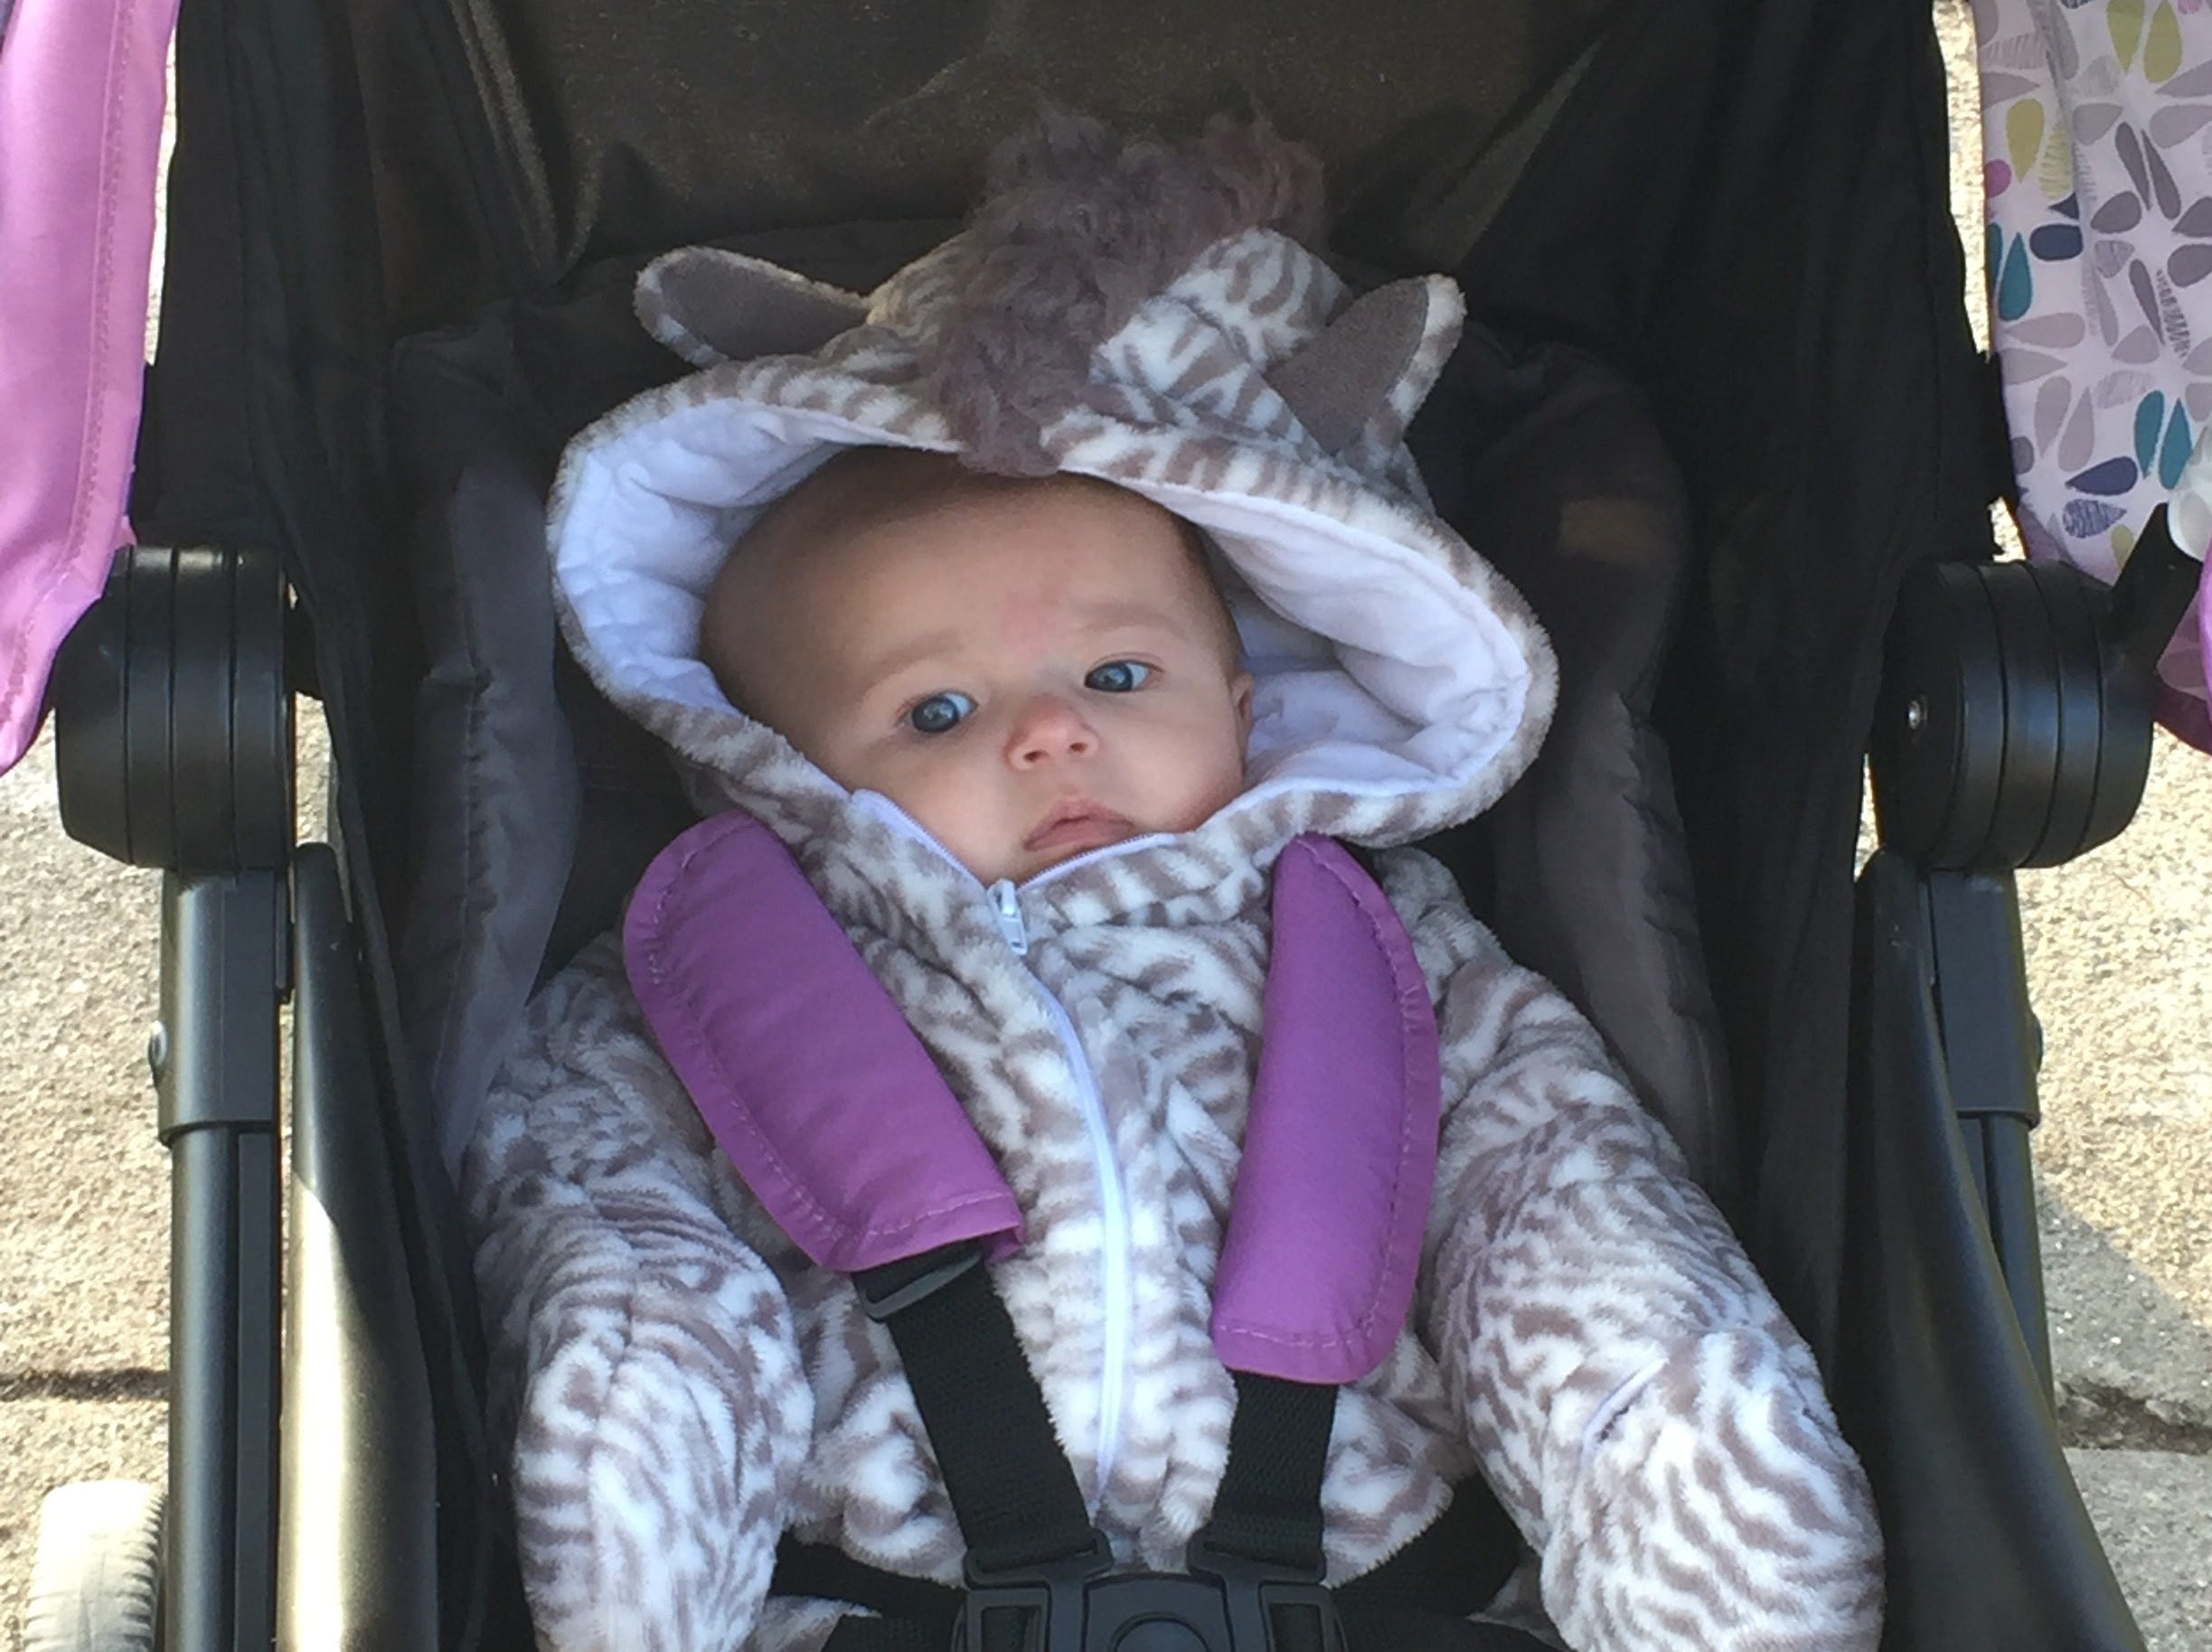 Ellie Tennies, 3 months, all dressed up as a zebra for Halloween.  Her parents are Heather and Joe Tennies of Brandon.